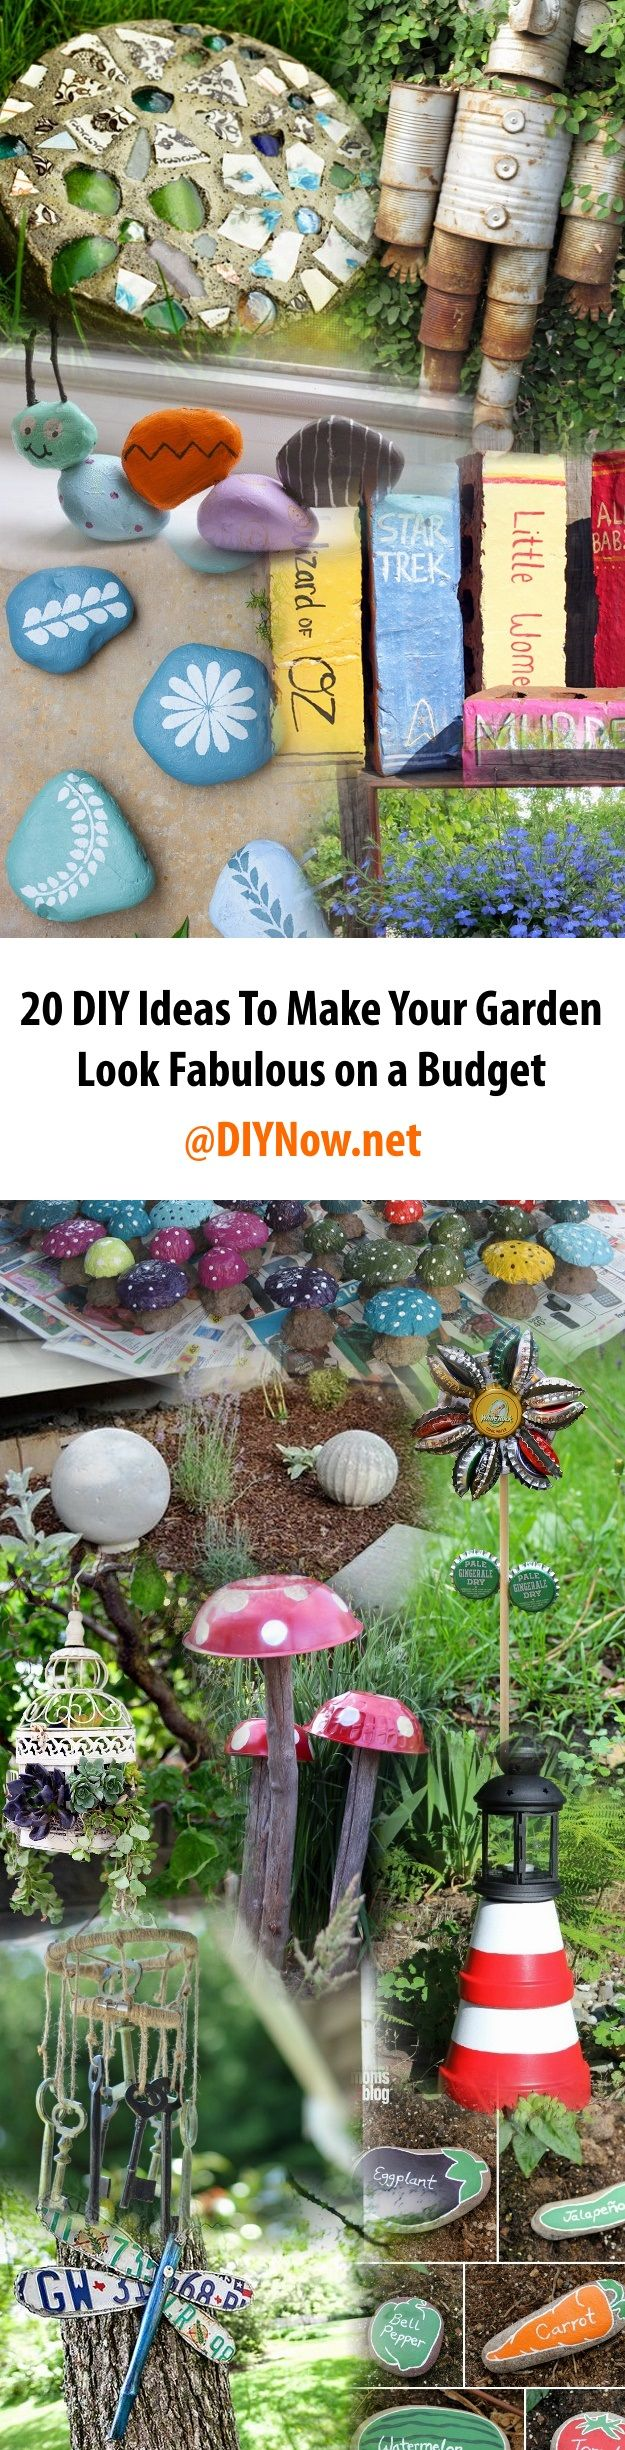 20 DIY Ideas To Make Your Garden Look Fabulous on a Budget